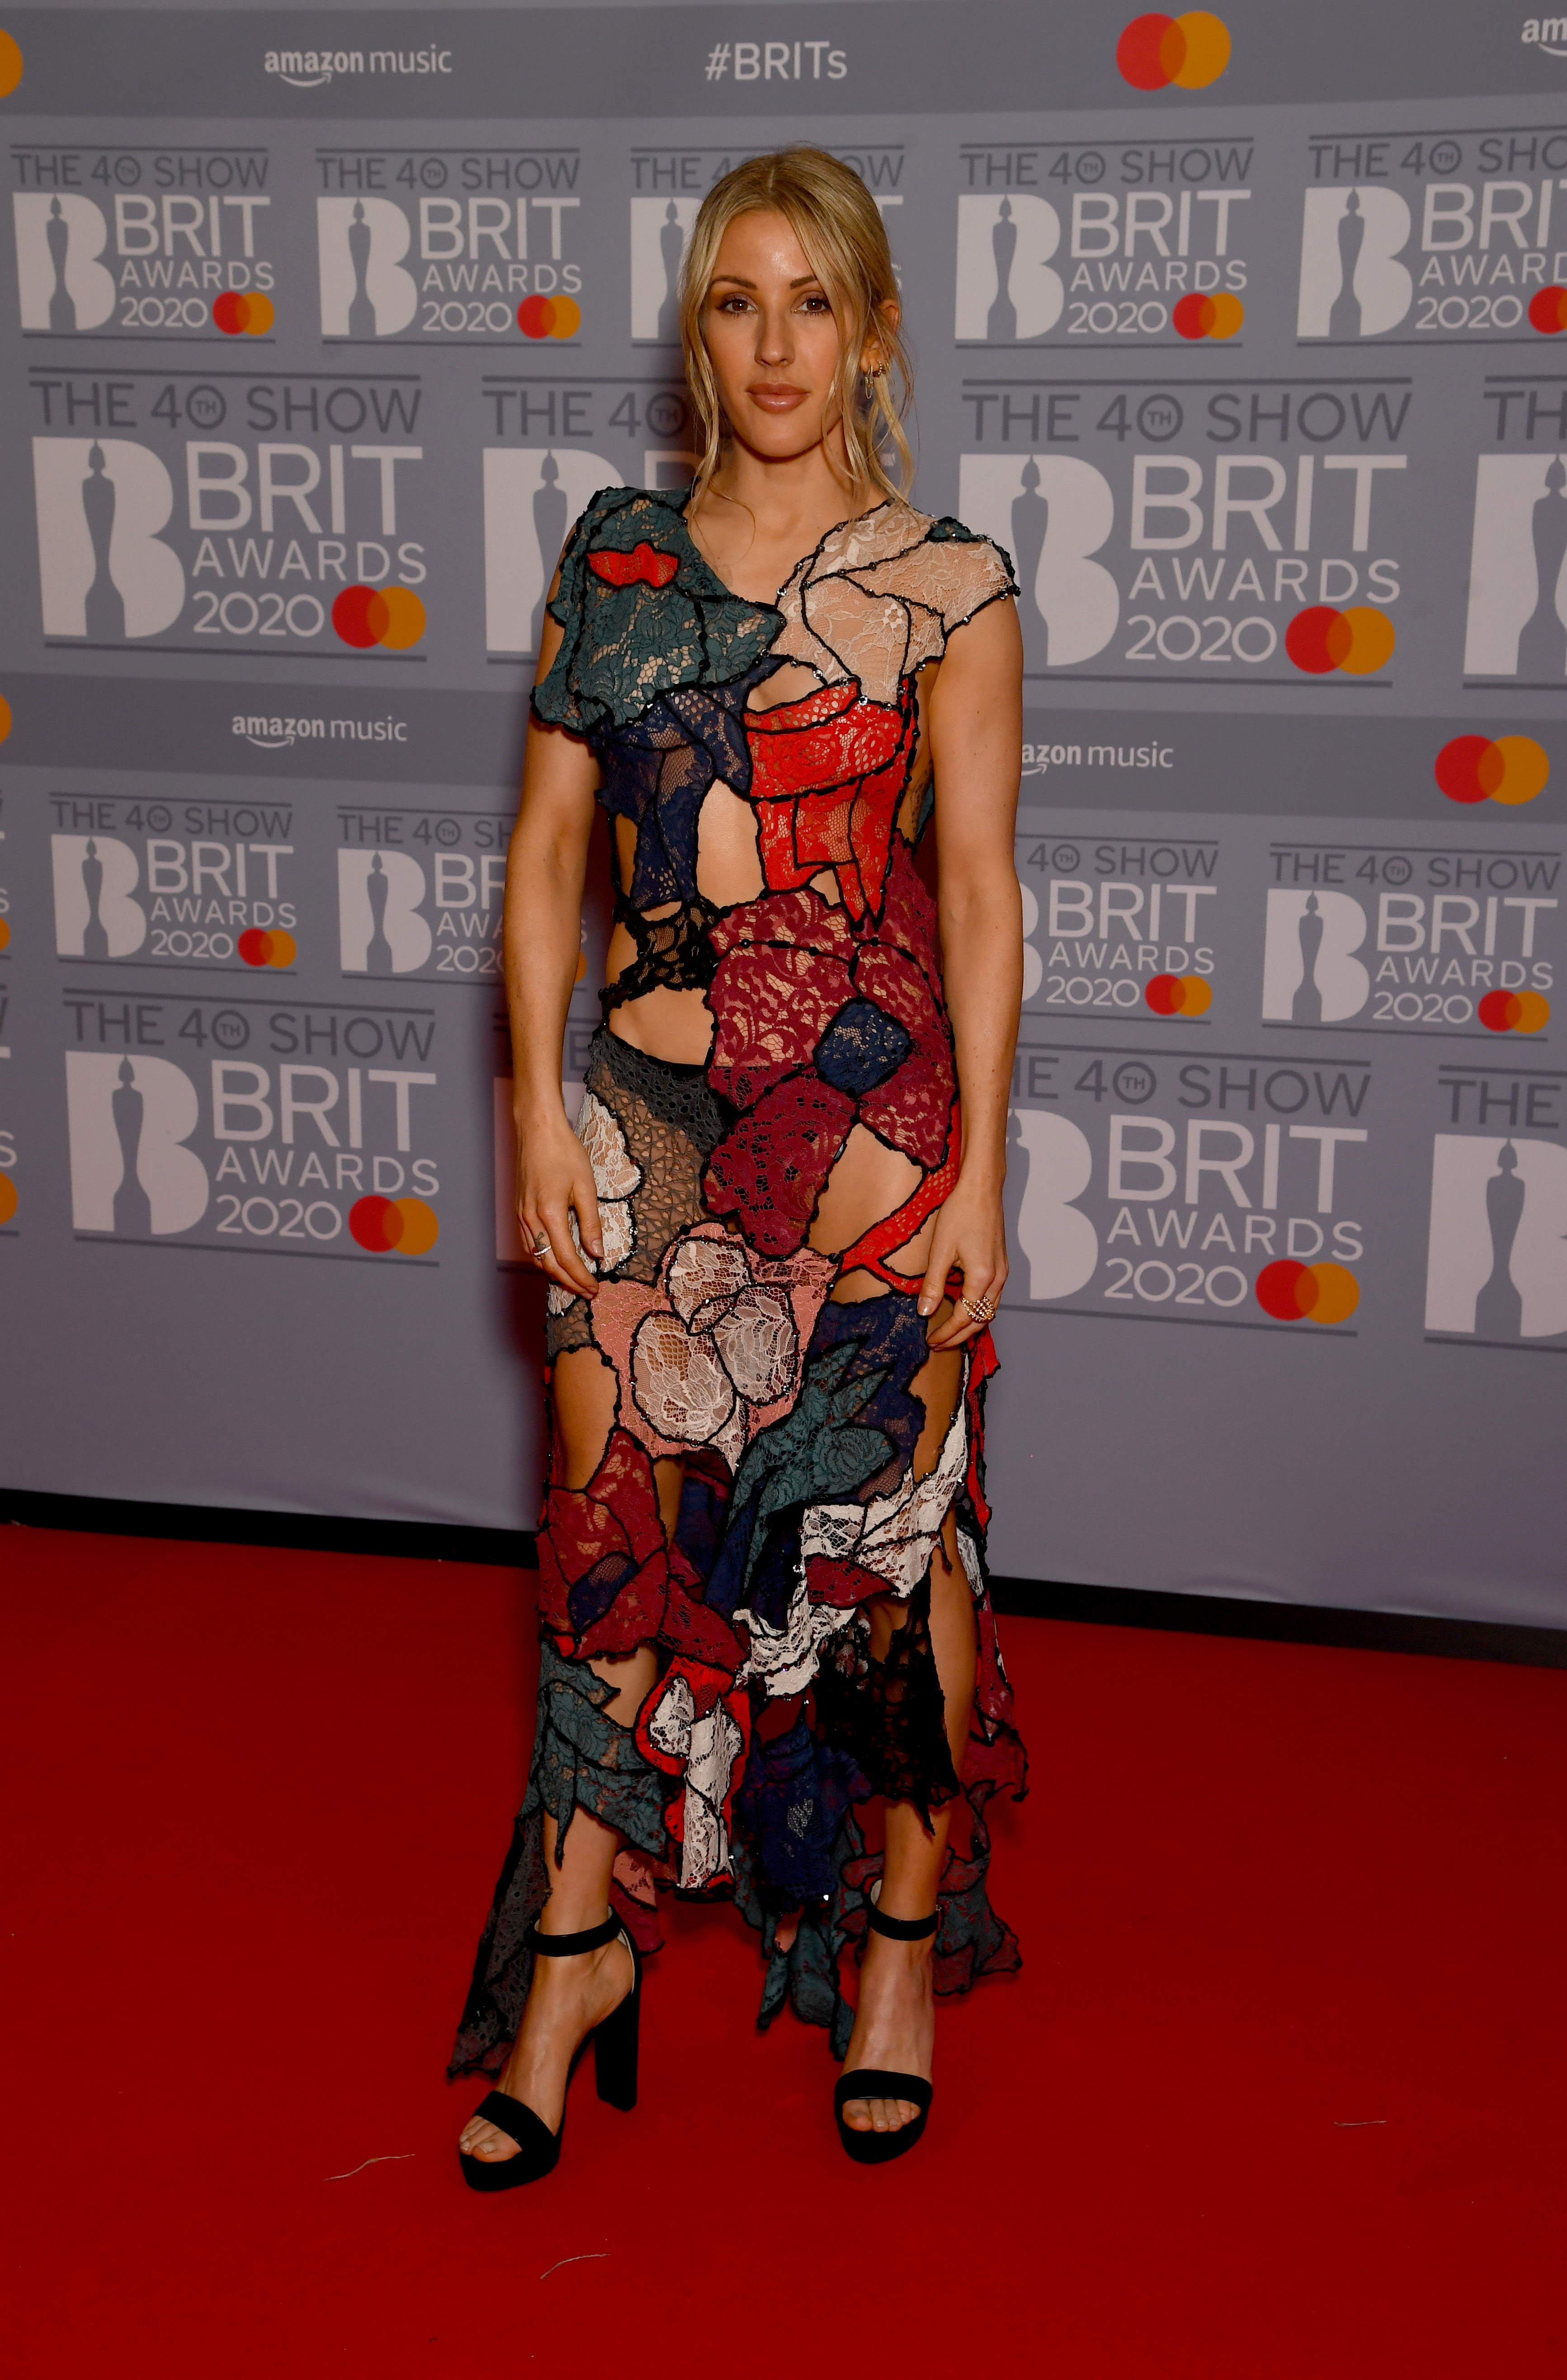 Ellie Goulding attends The BRIT Awards 2020 at The O2 Arena on February 18, 2020 in London, England. (Photo by Dave J Hogan/Getty Images)